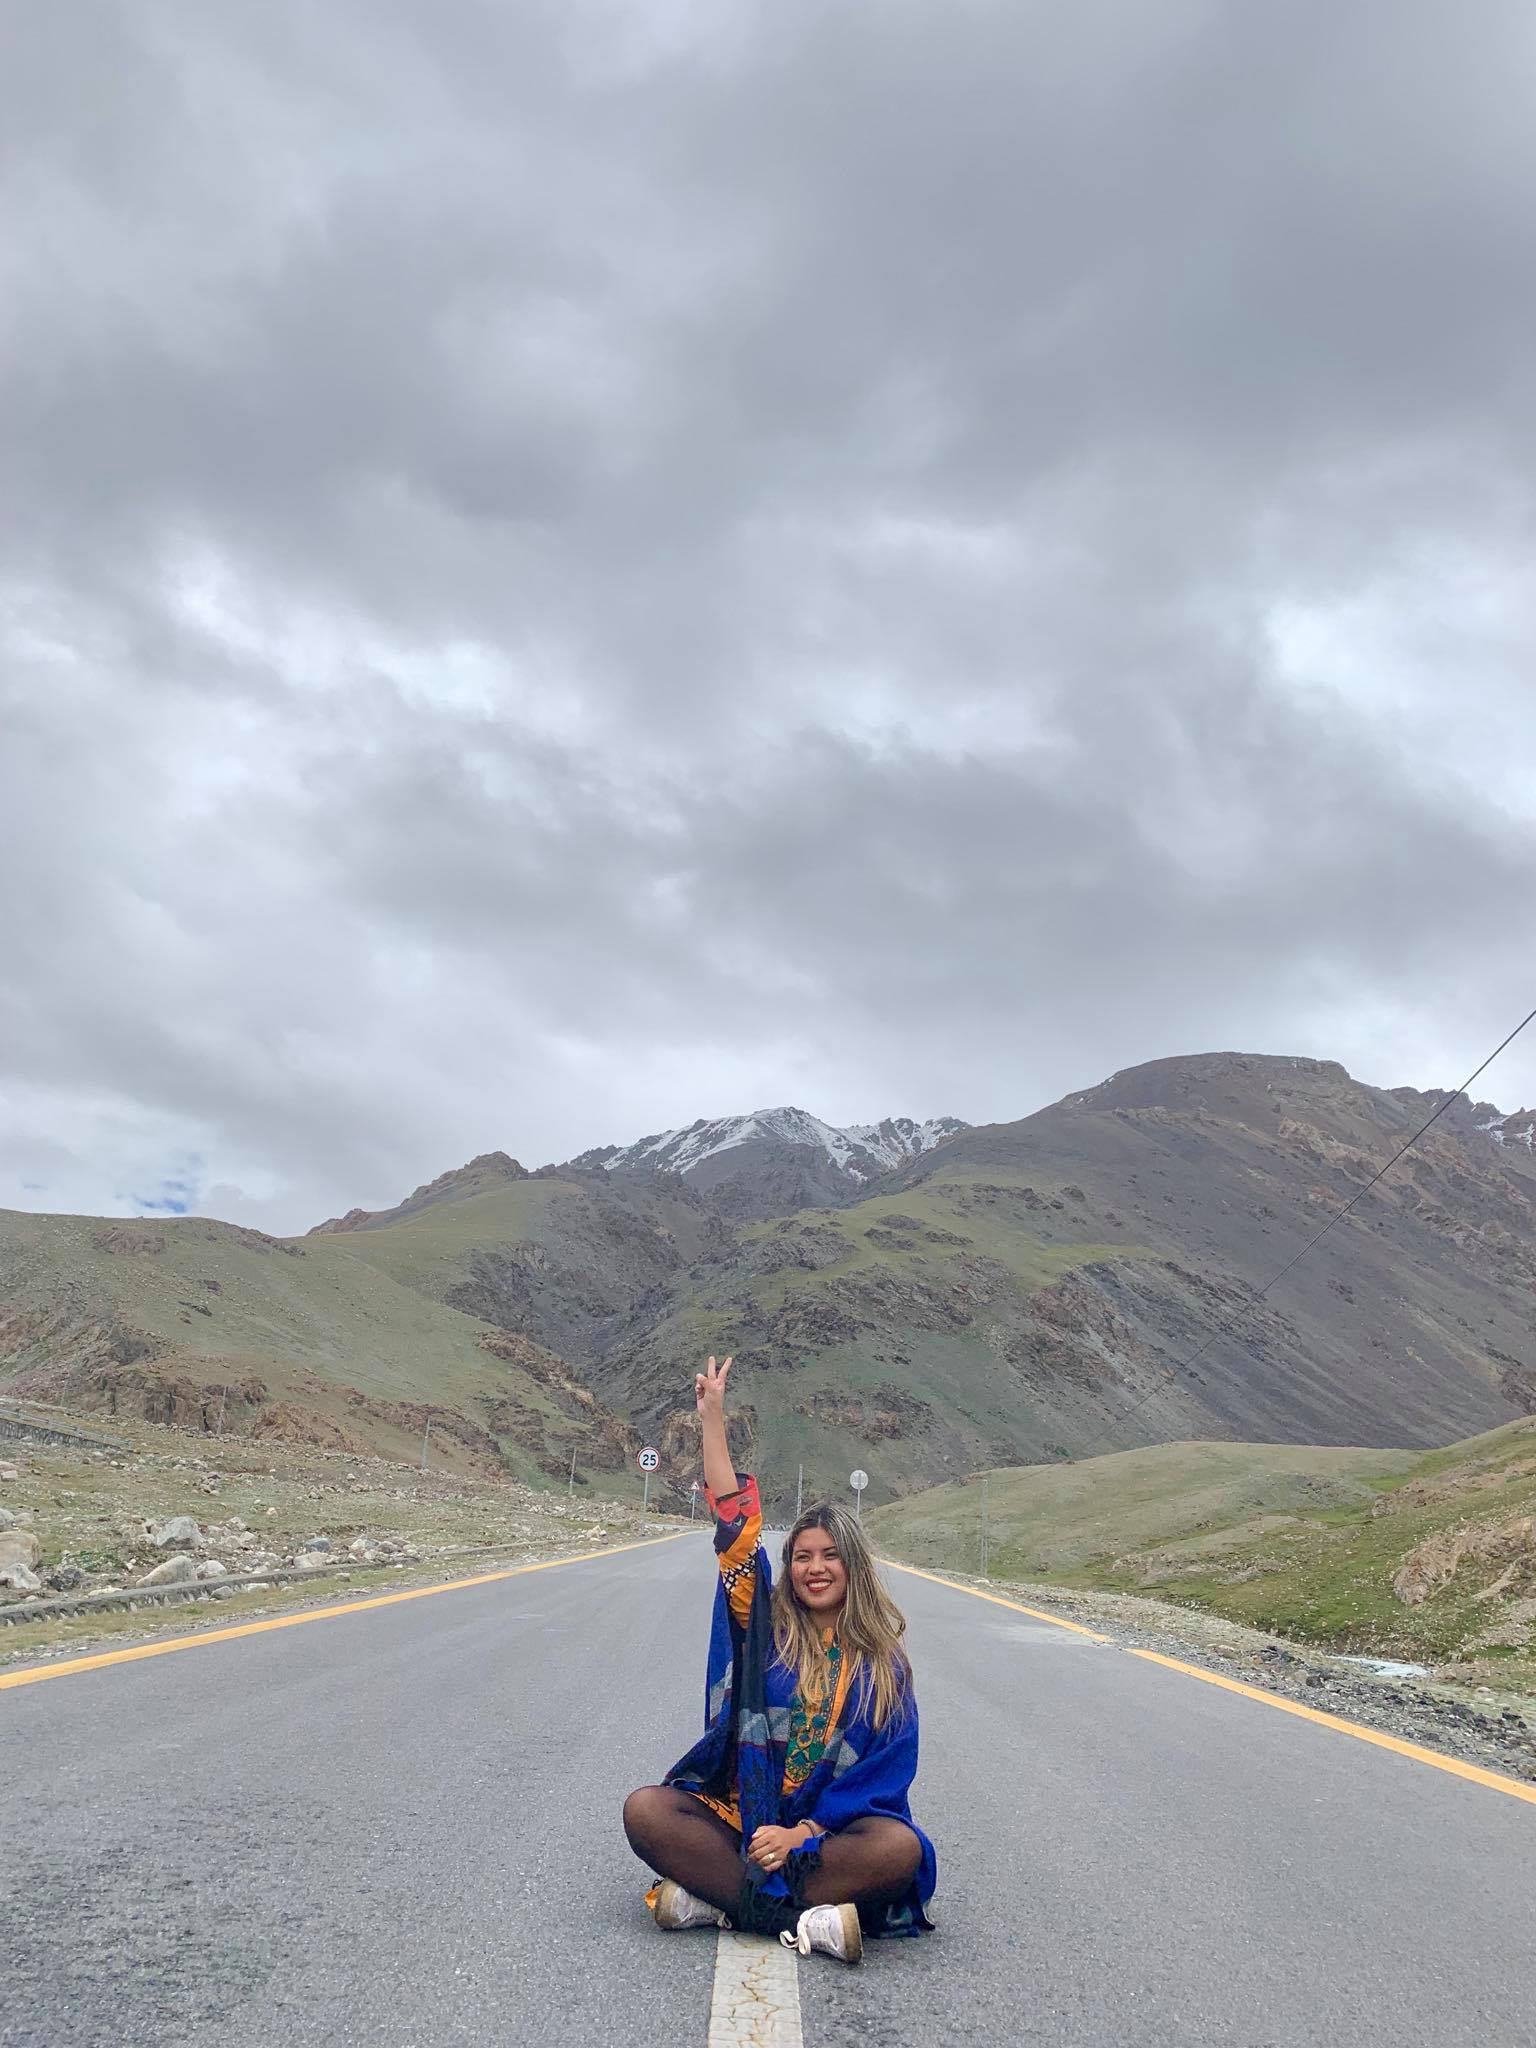 Kach Solo Travels in 2019 Driving in North Hunza Valley to Khunjerab Pass21.jpg